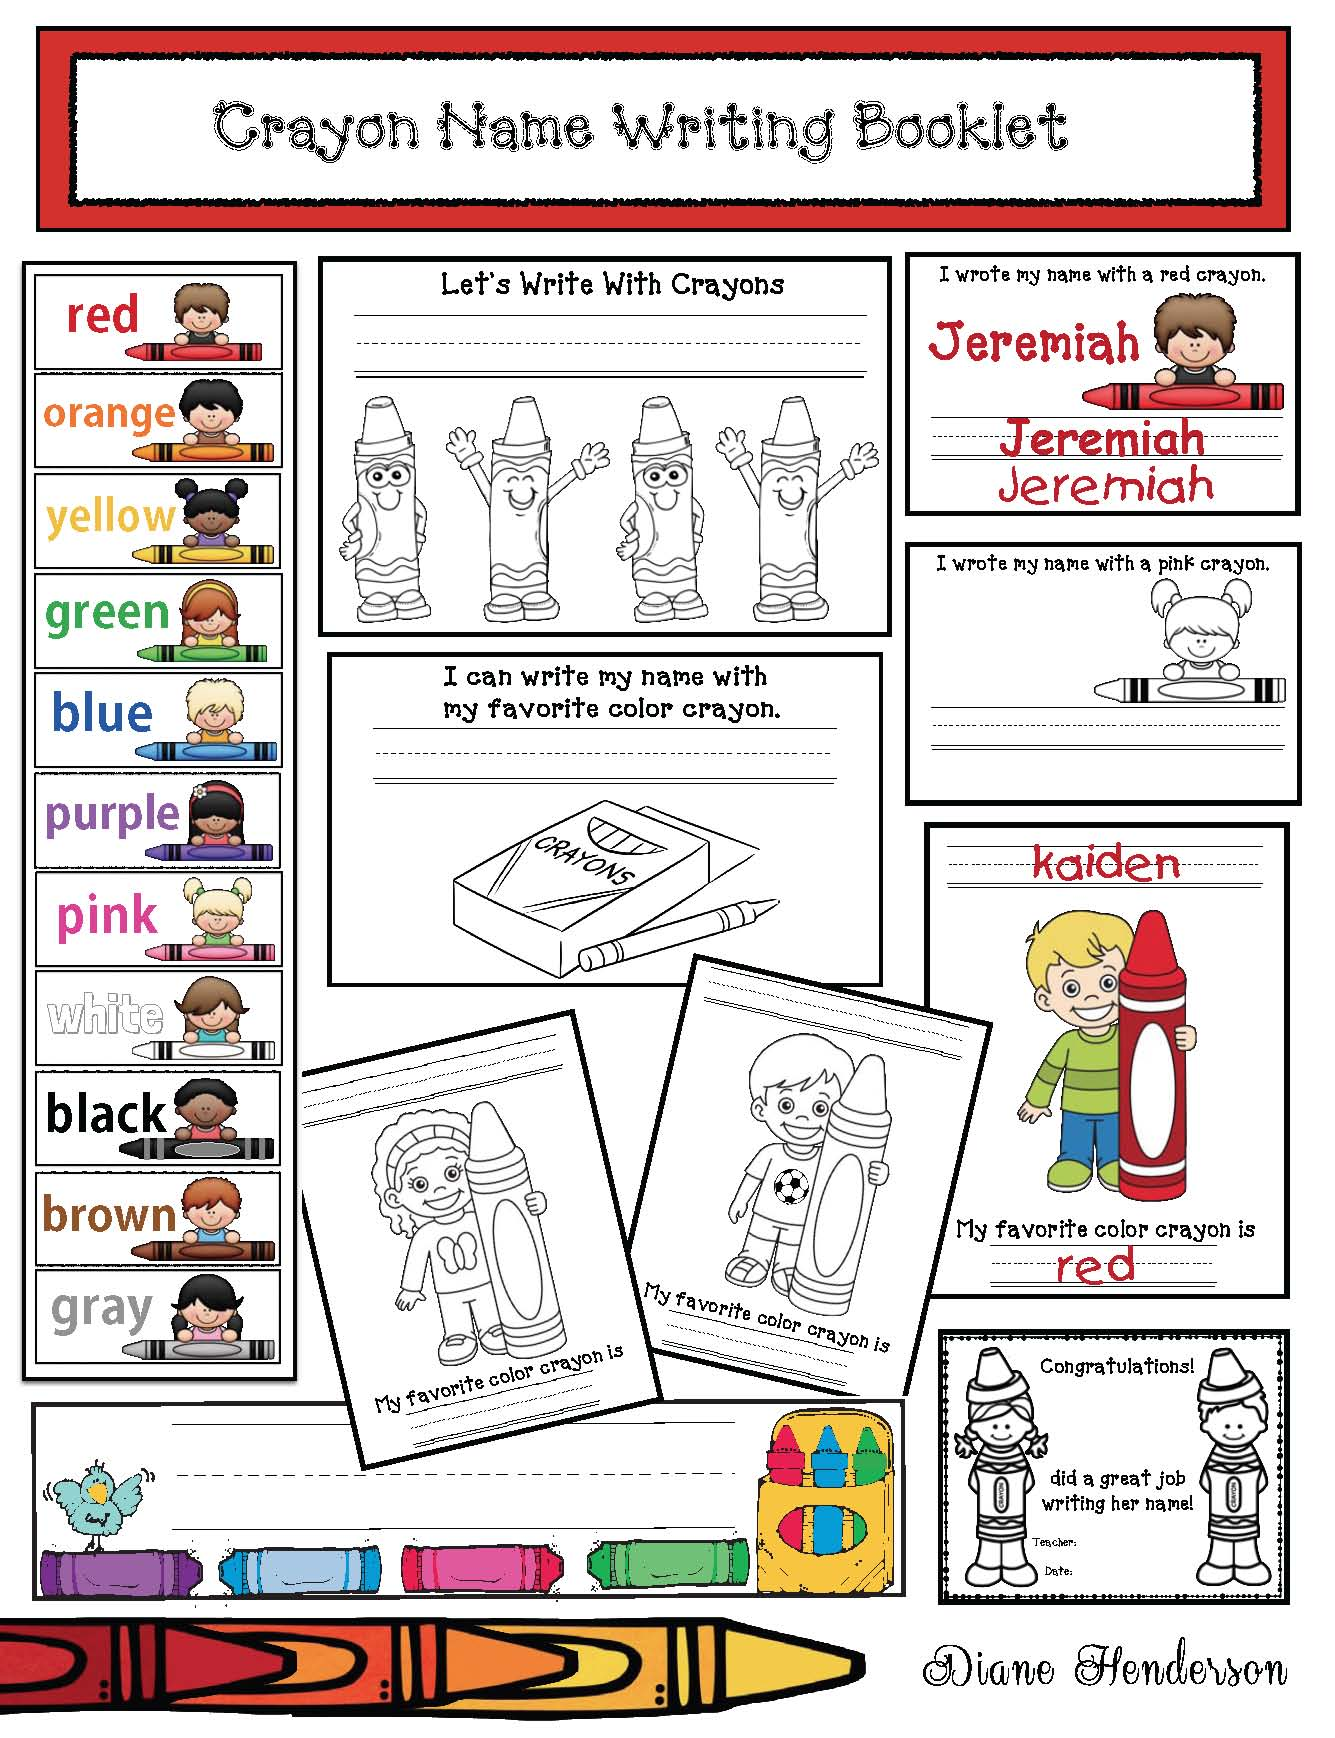 name writing activities, name writing booklet, name writing practice, for crayon out loud, crayon color postrs,